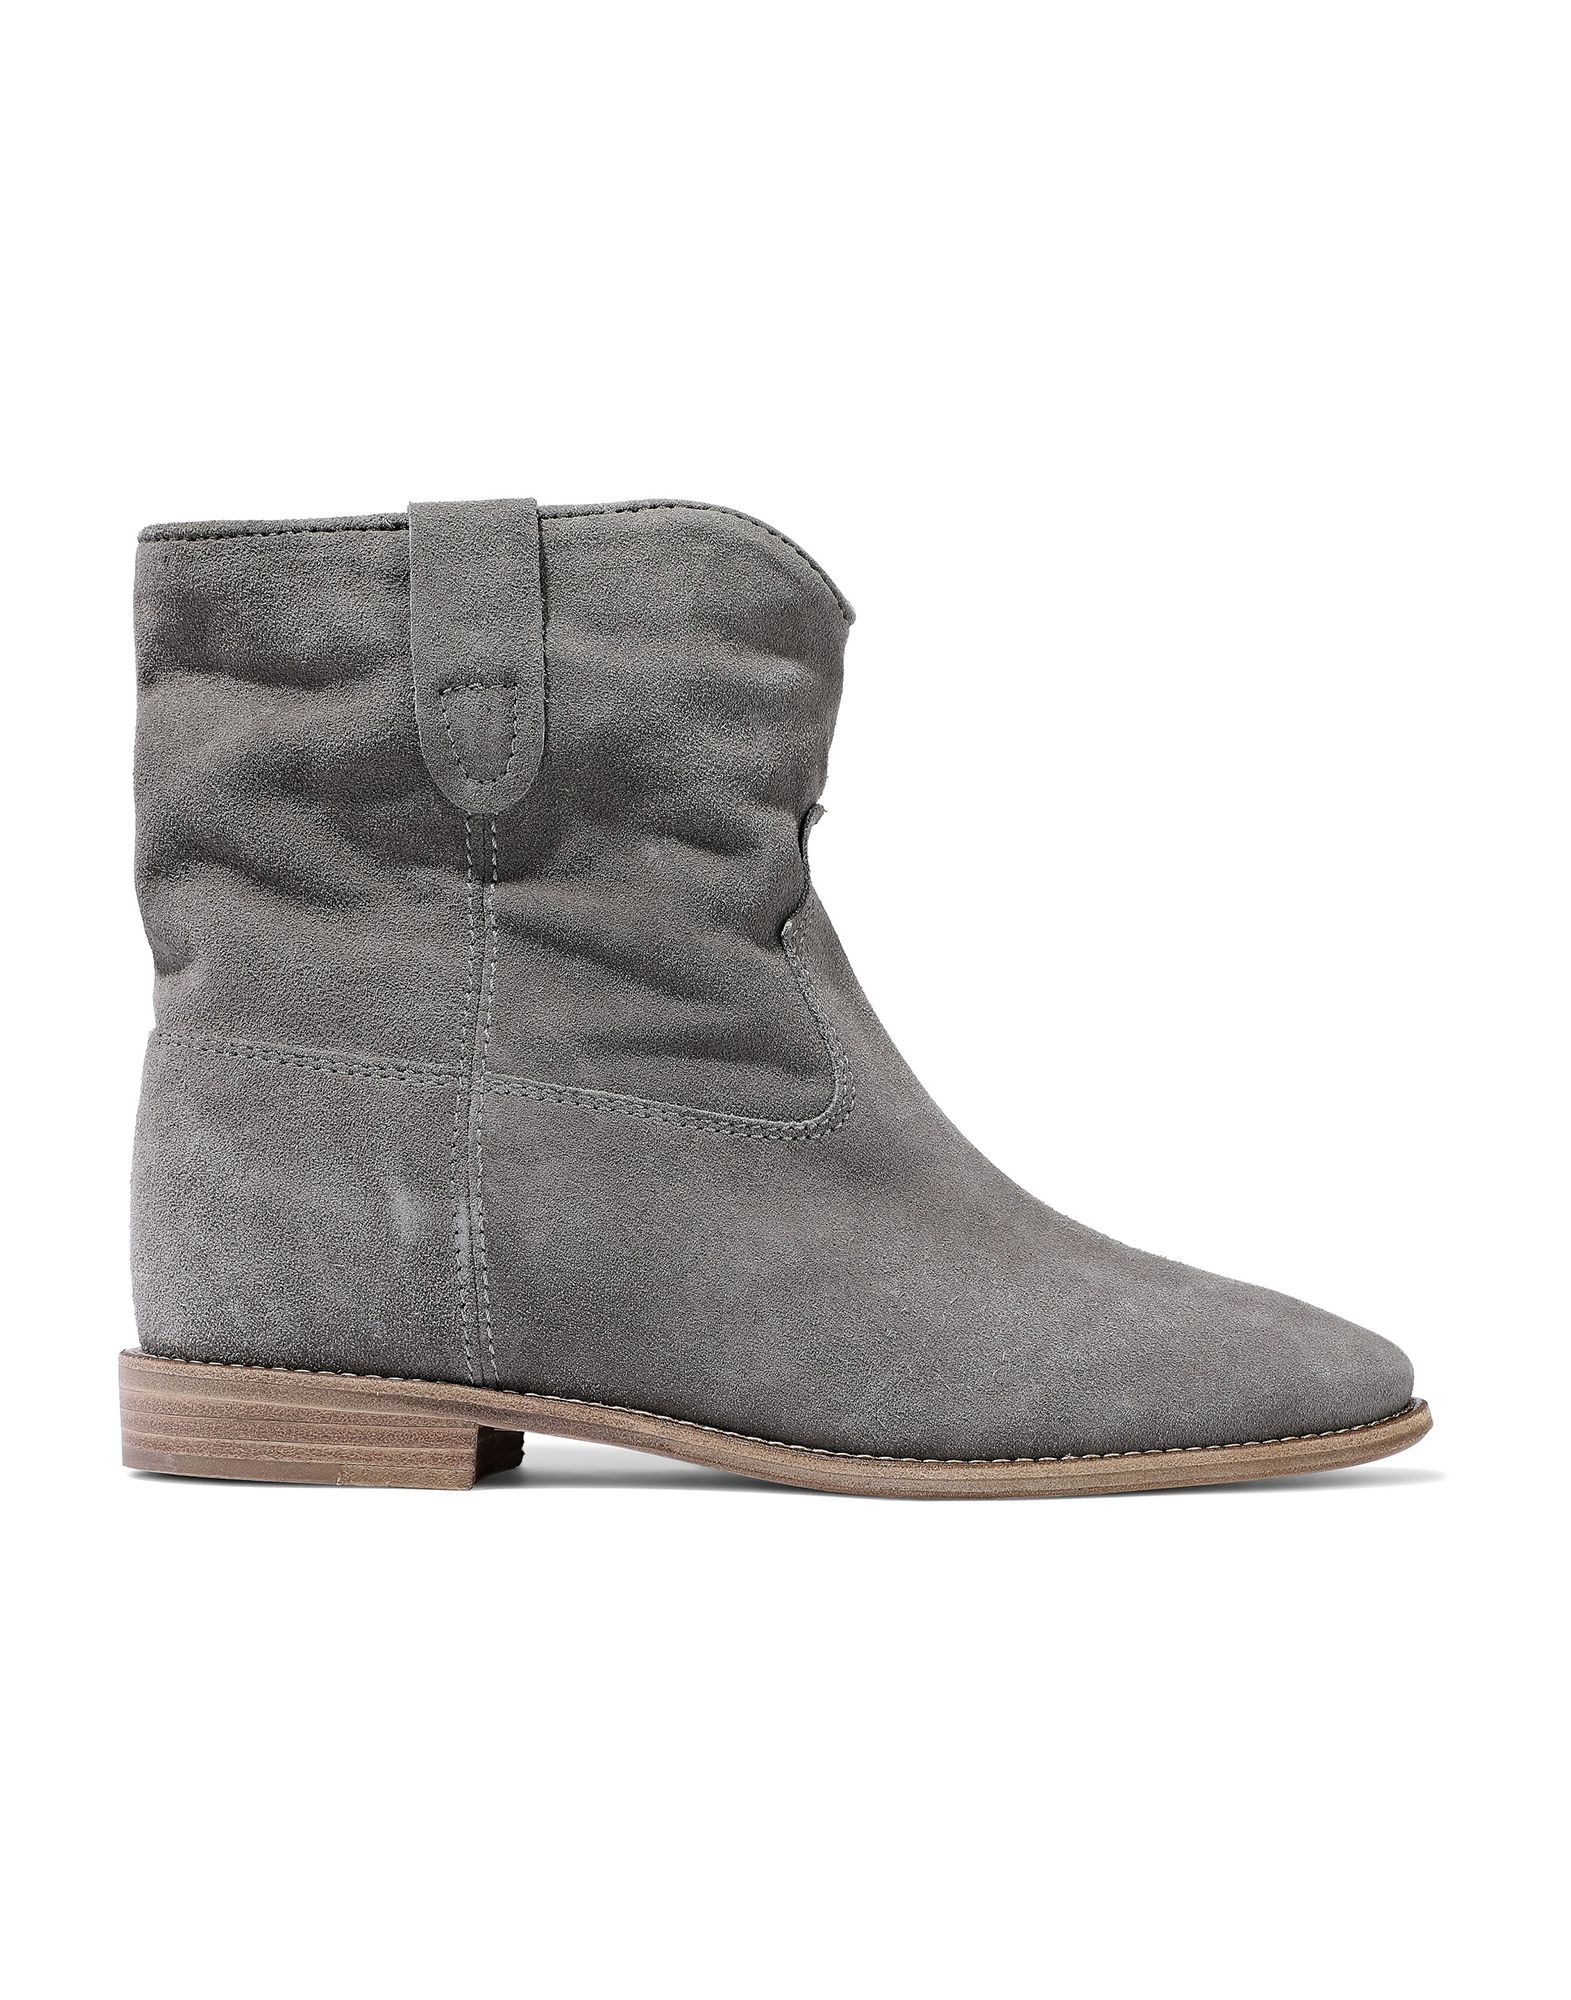 ISABEL MARANT Ankle boots. suede effect, no appliqués, solid color, round toeline, flat, leather sole, leather lining, contains non-textile parts of animal origin, small sized. Soft Leather